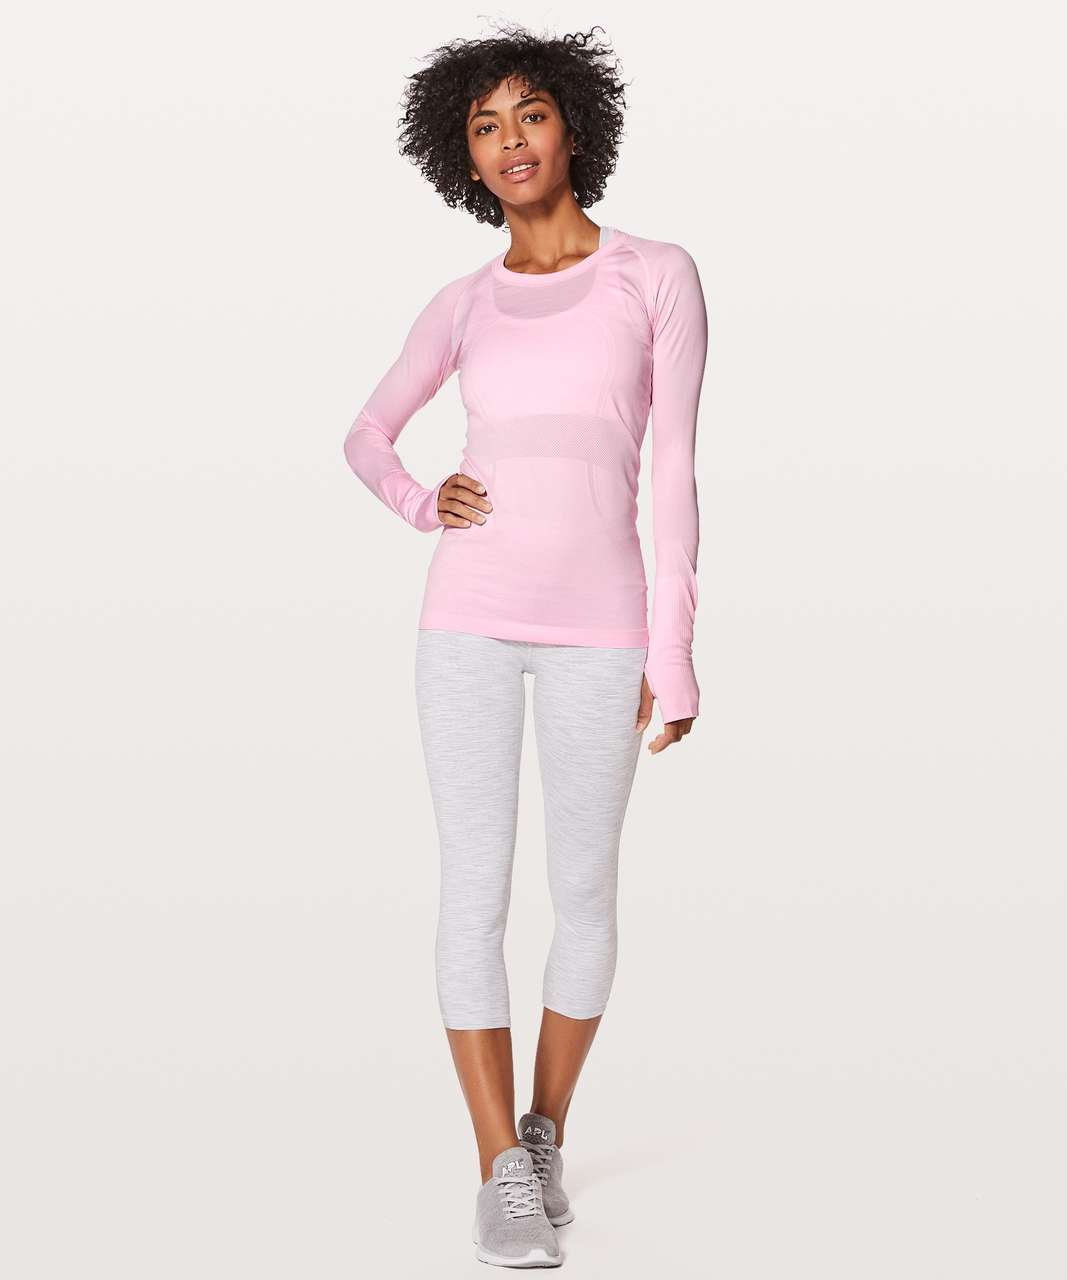 Lululemon Swiftly Tech Long Sleeve Crew - Pearl Pink / Pearl Pink